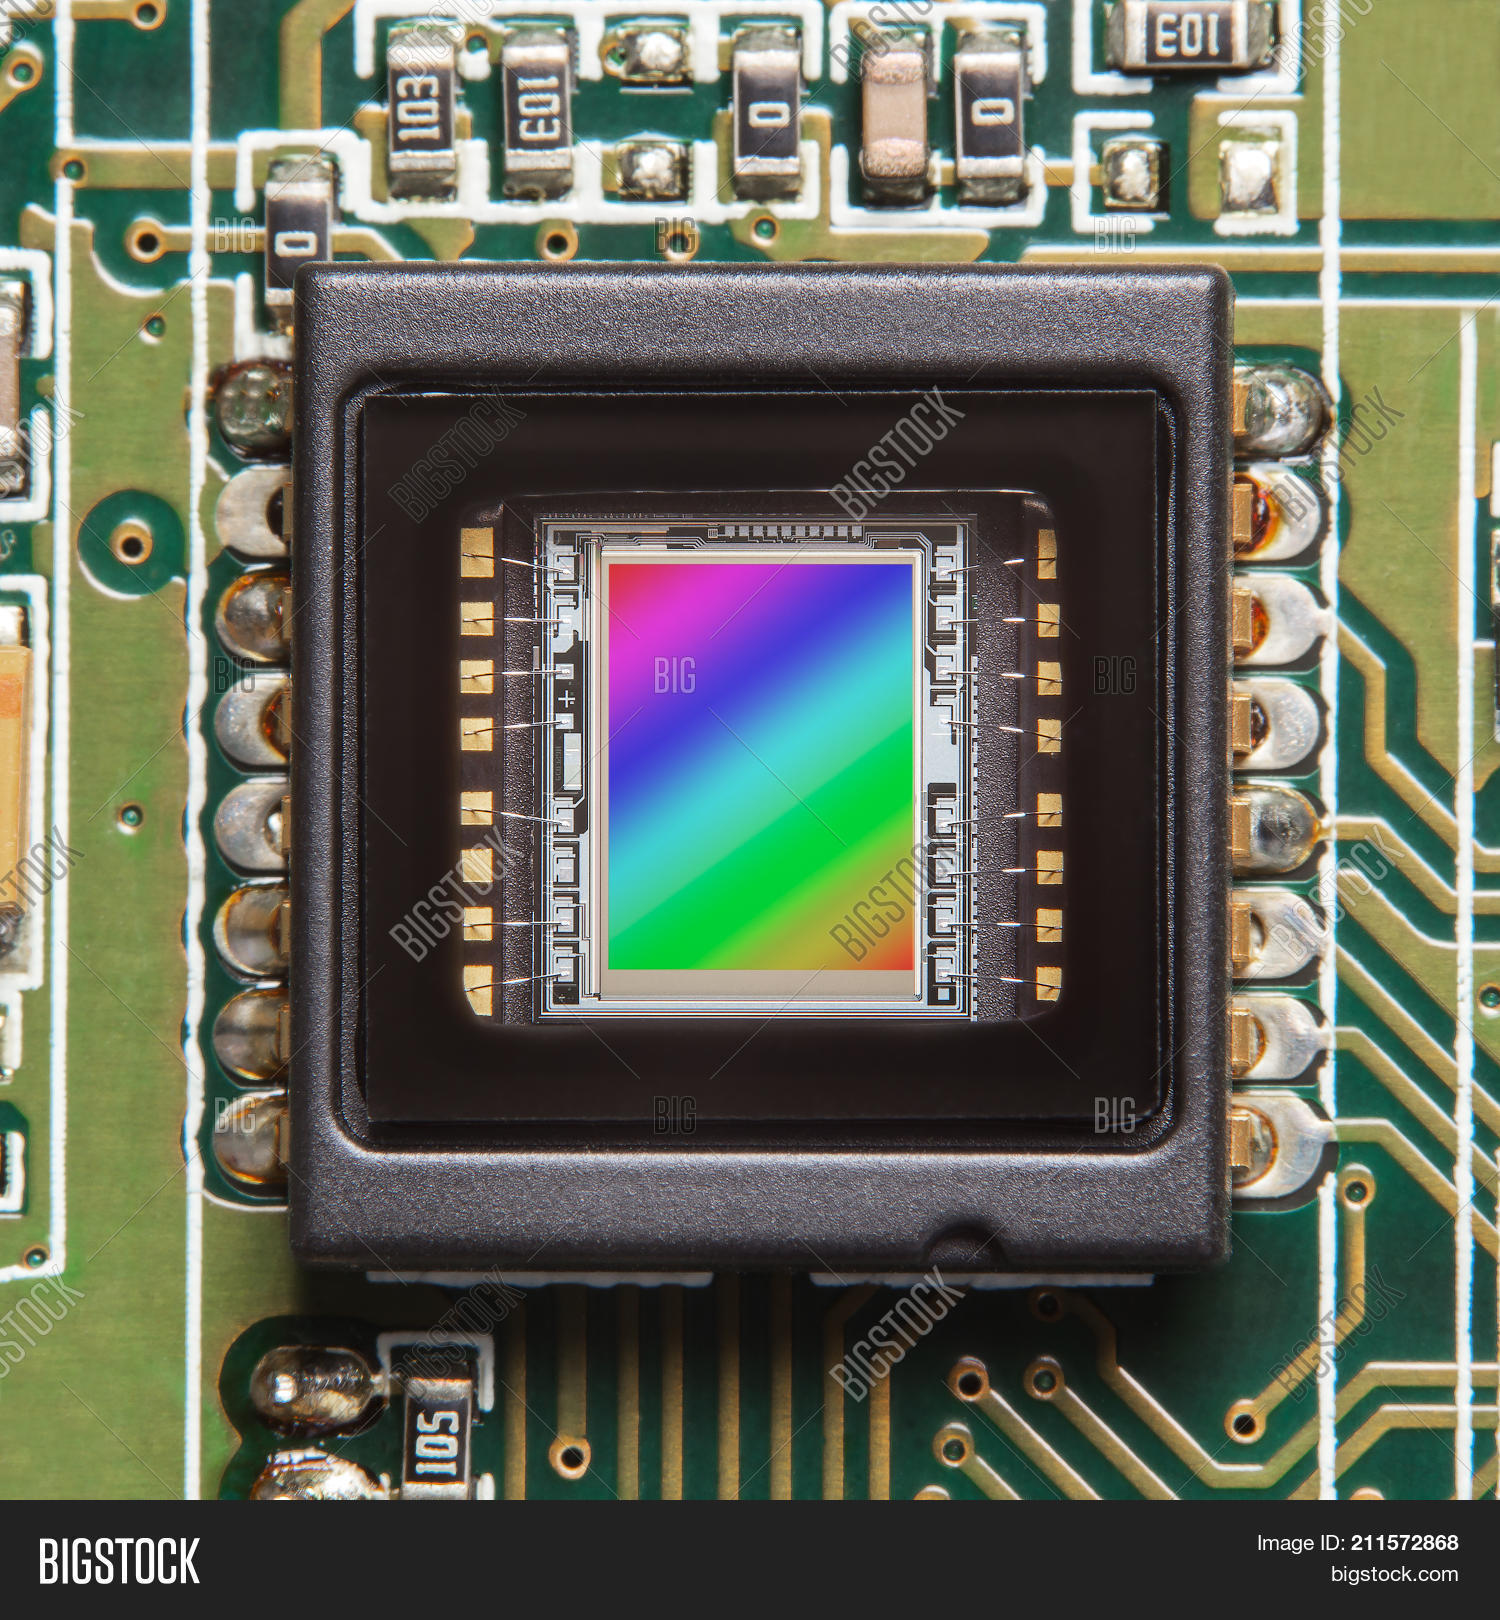 Ccd Sensor On Printed Image Photo Free Trial Bigstock As Before We Can Copy The Circuit Onto A Board And Closeup